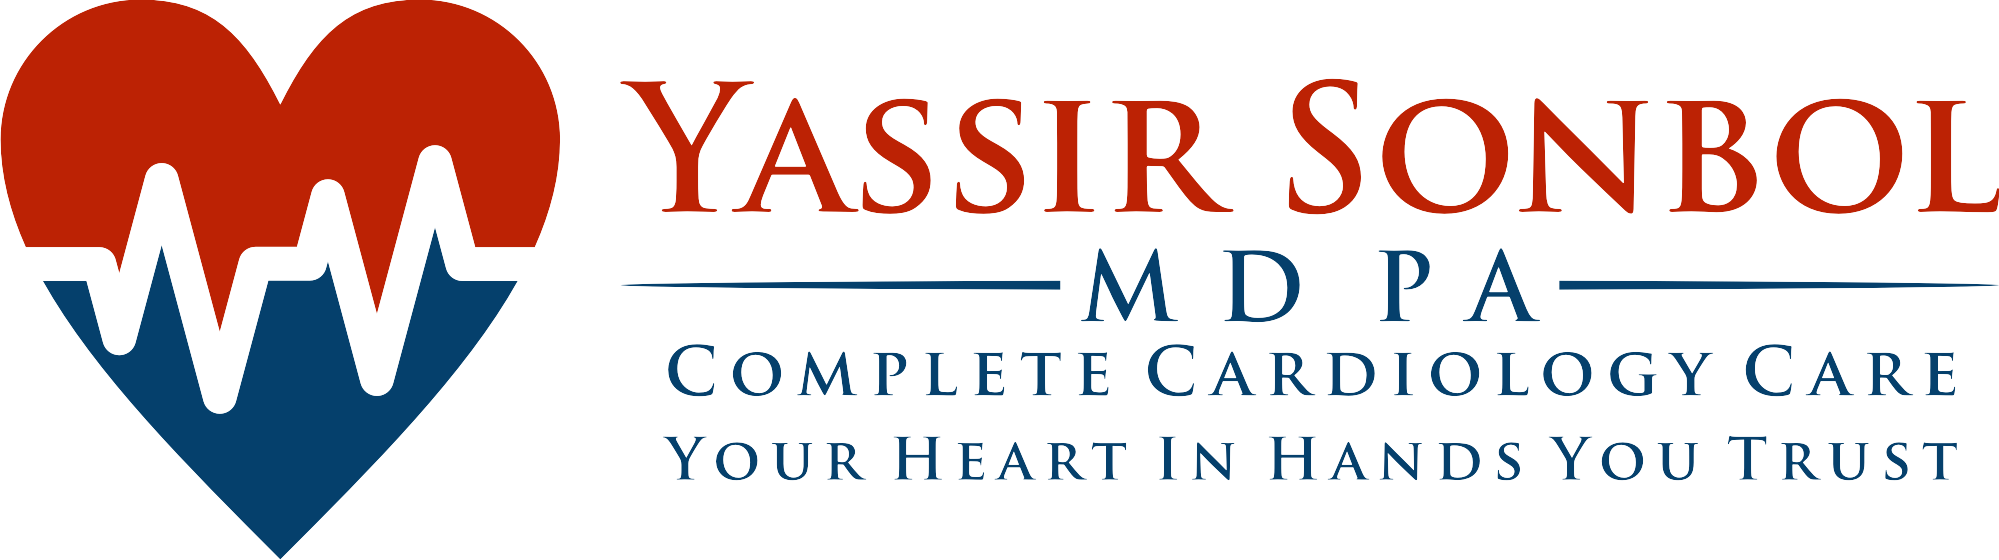 Complete Cardiology Care Logo